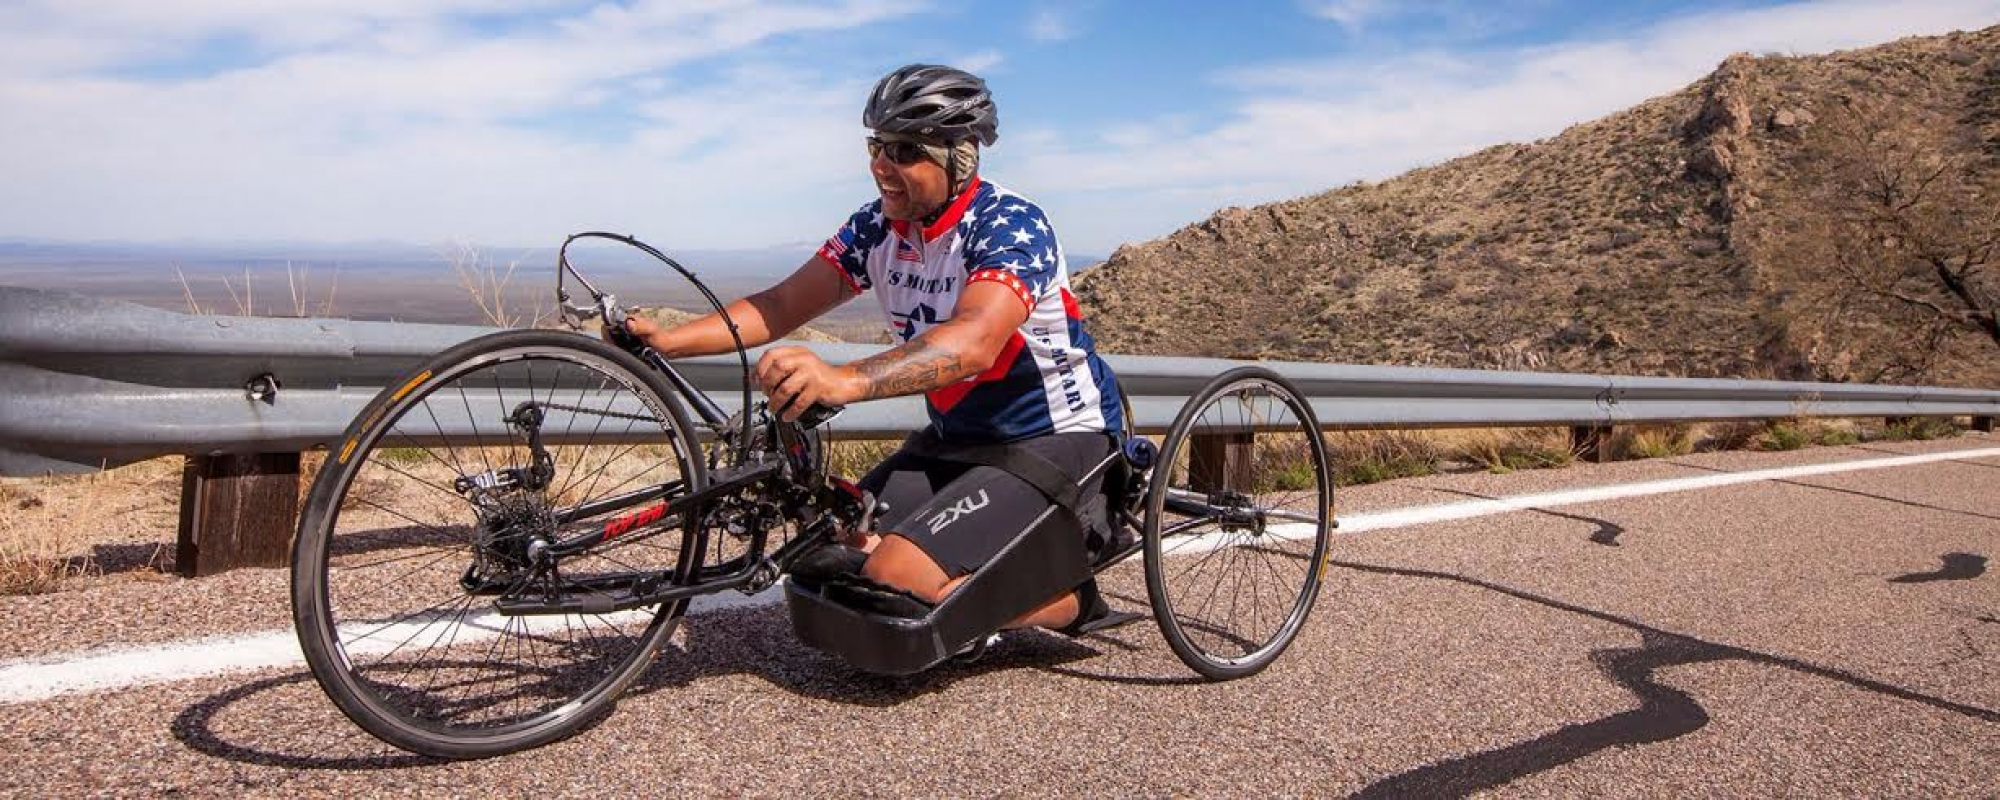 US Military Endurance Sports - Fit to Fight, Fit for Life